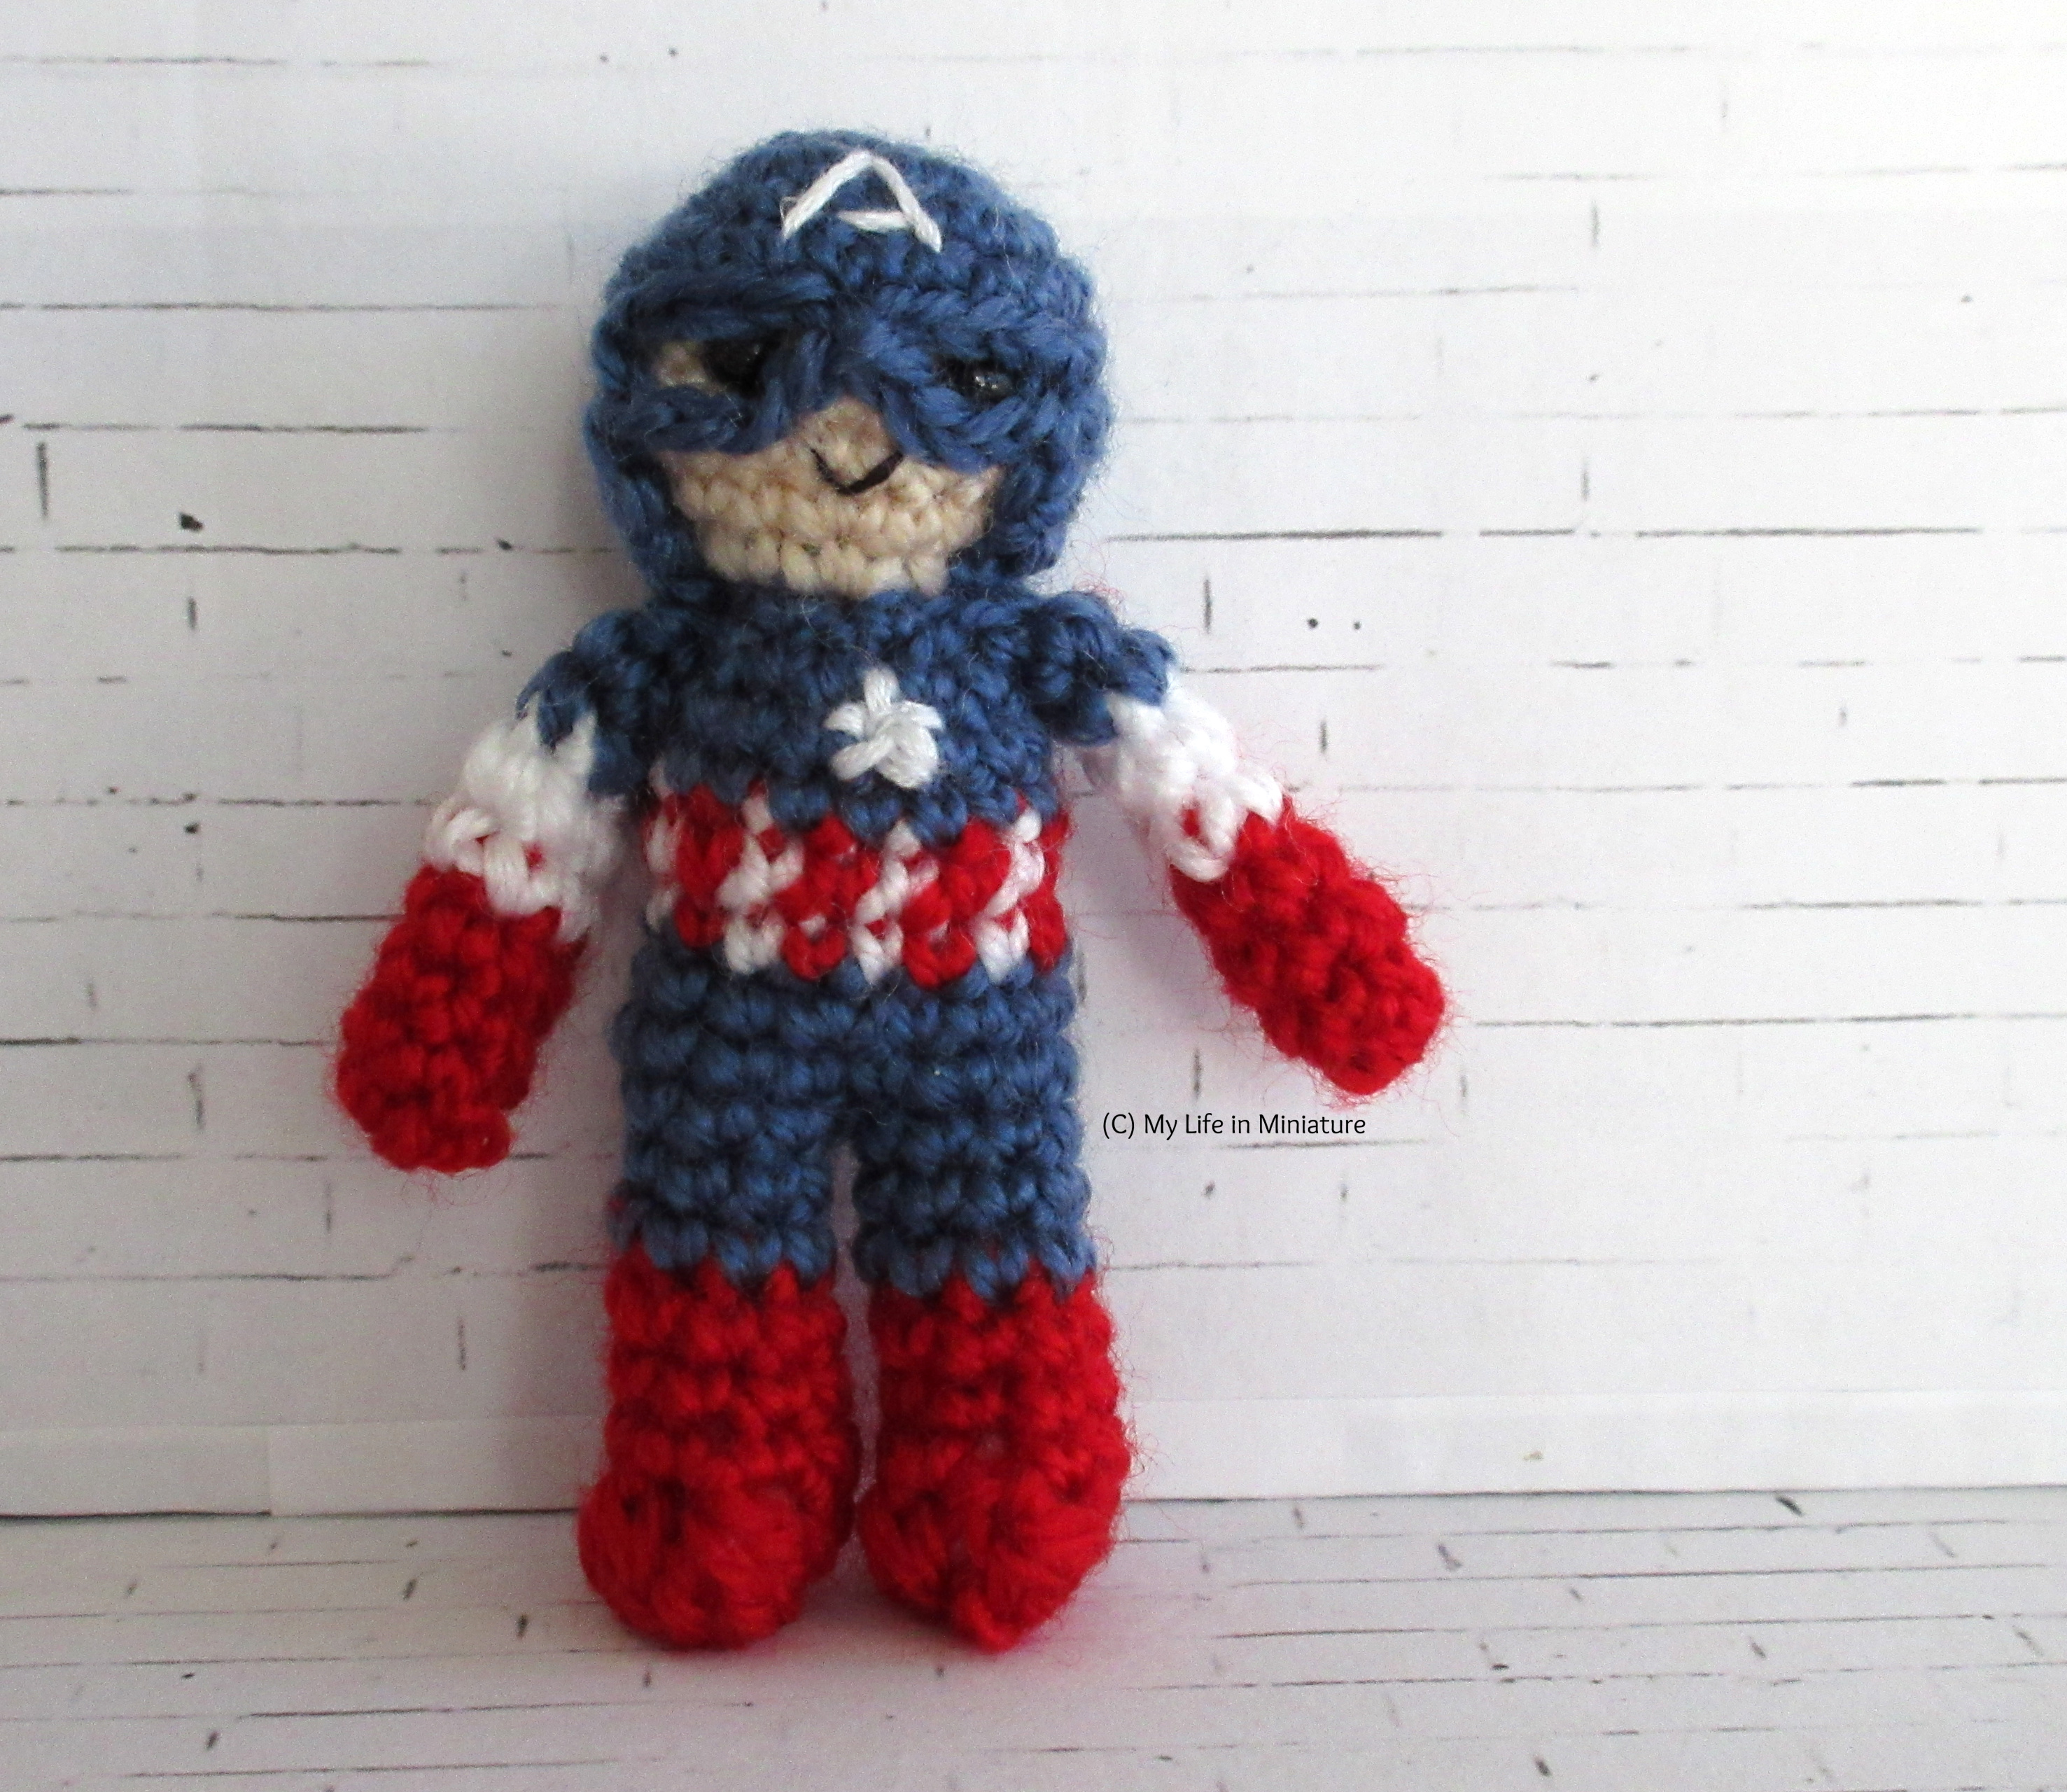 A miniature Captain America crocheted doll stands against a white brick background. He wears the helmet and suit from the first MCU movie, with eye-holes and a red-and-white striped section on the torso.